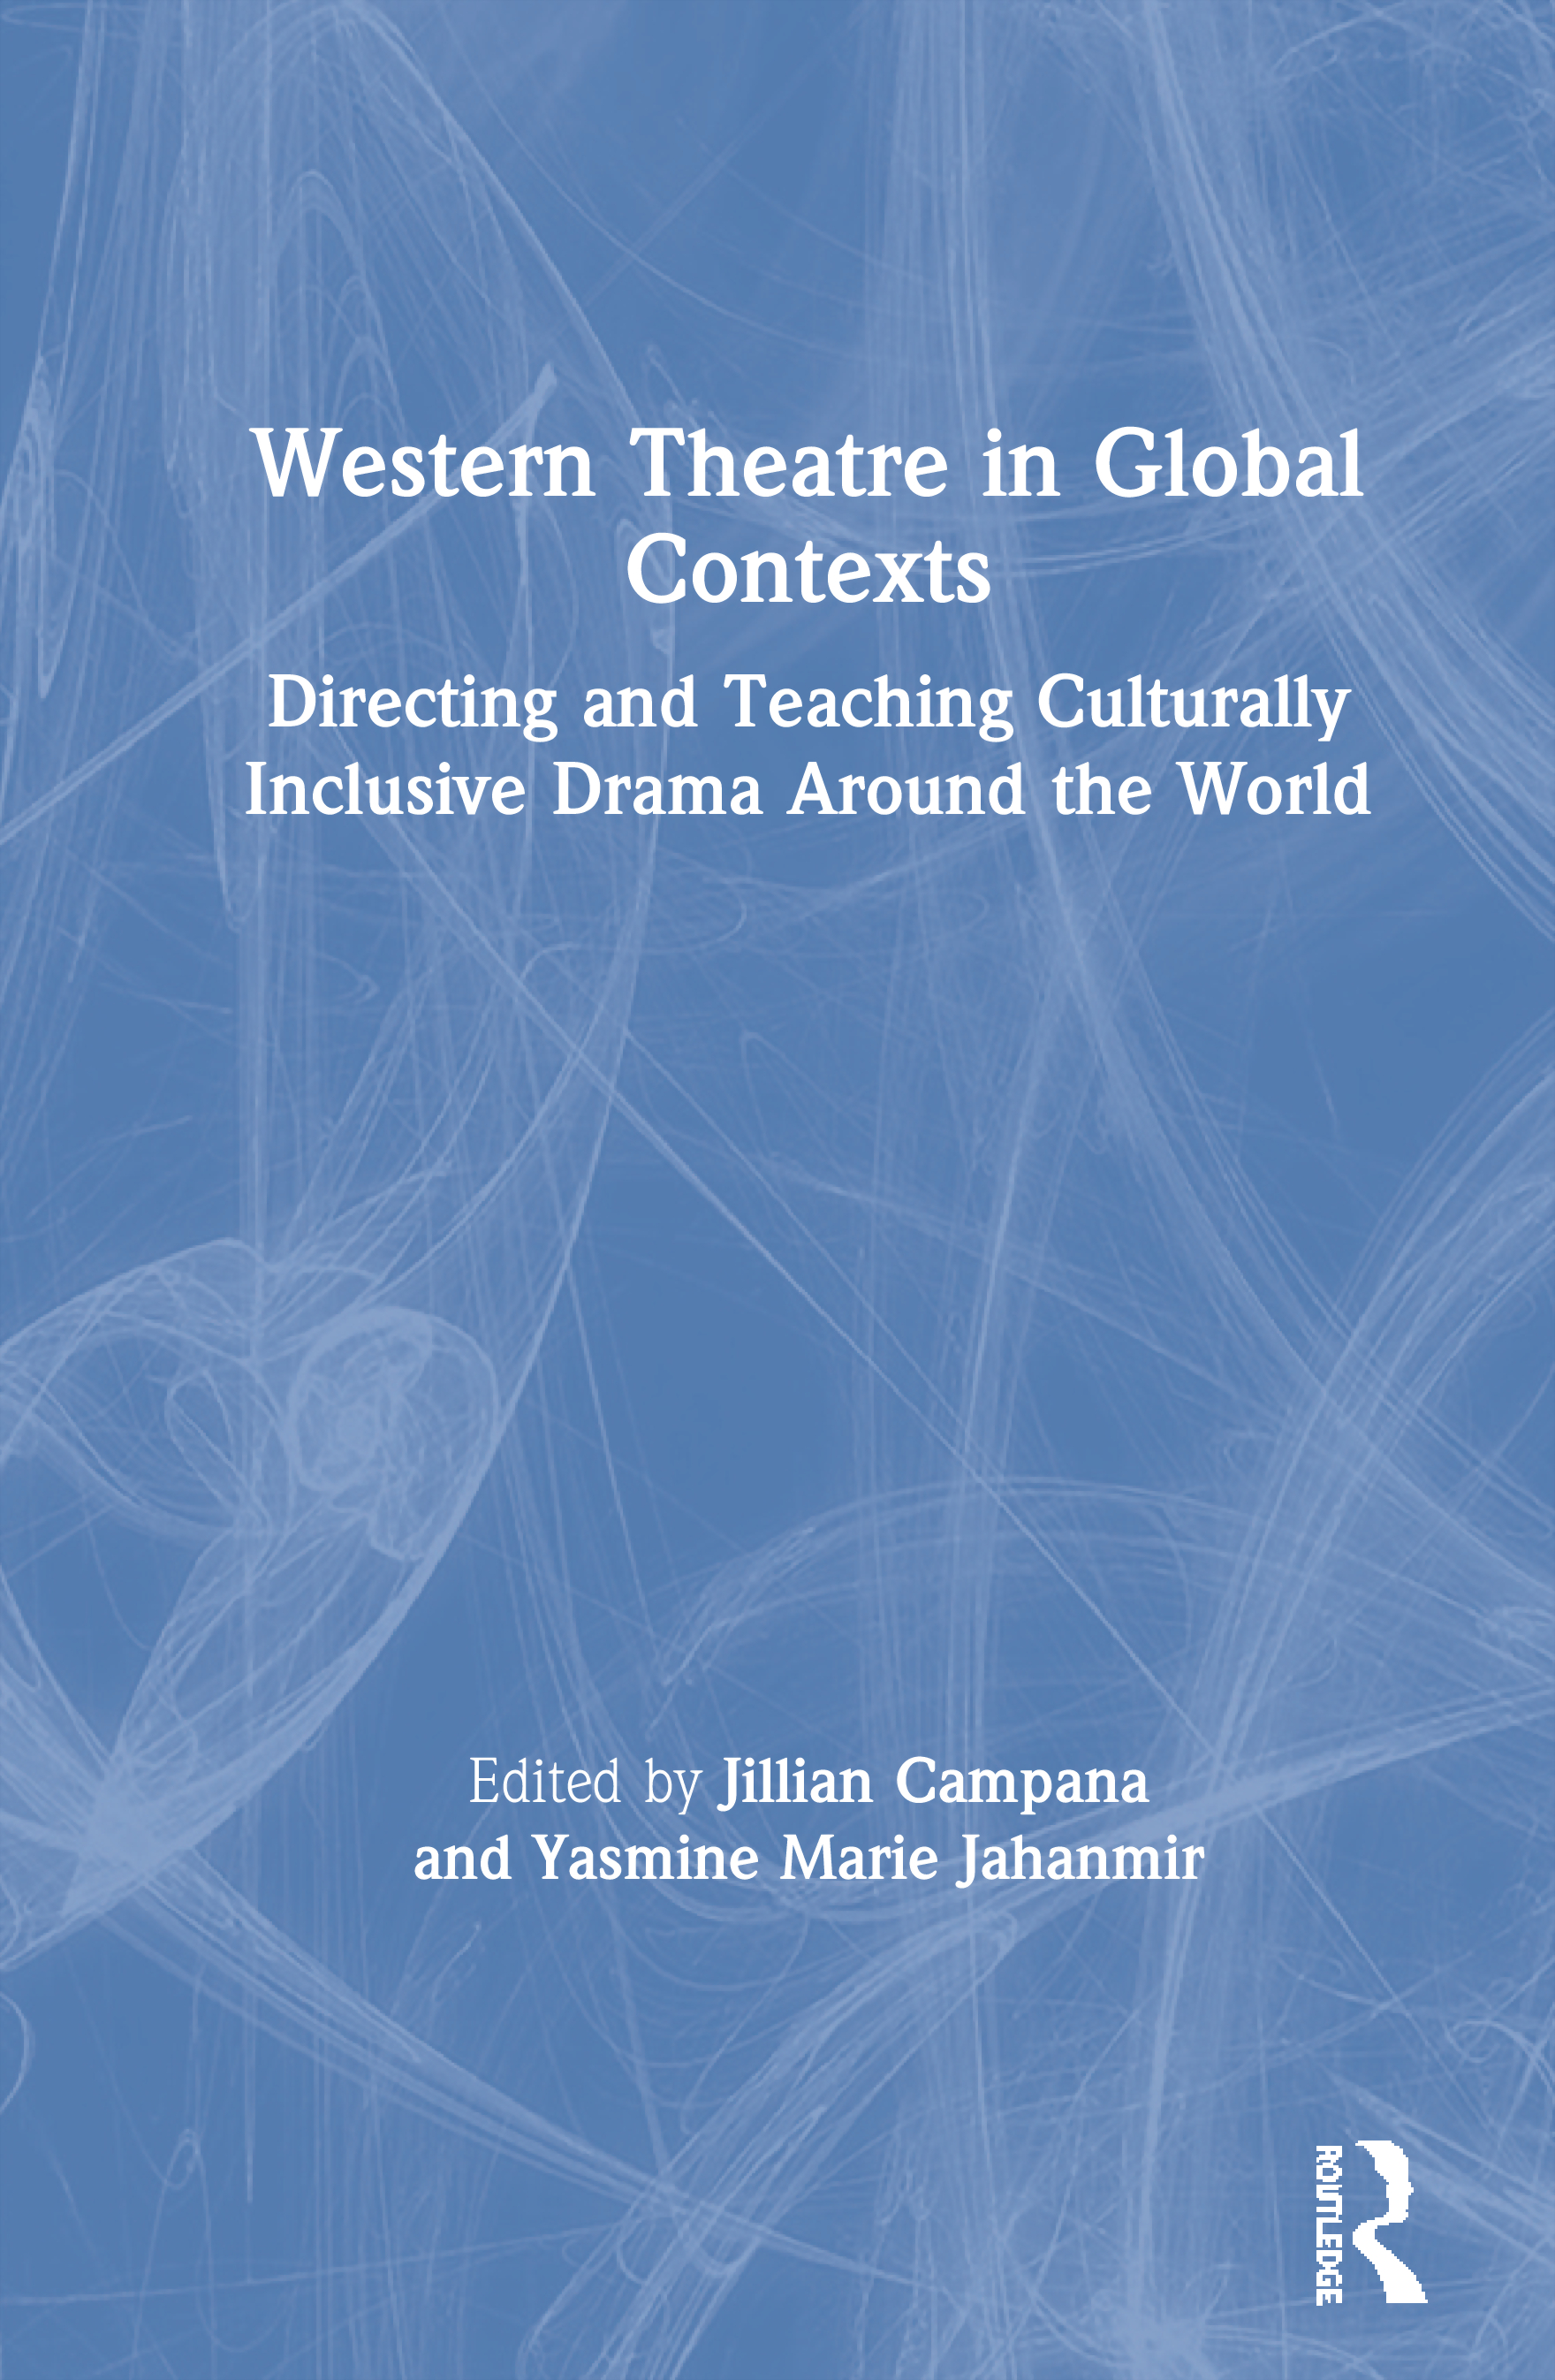 Western Theatre in Global Contexts: Directing and Teaching Culturally Inclusive Drama Around the World book cover